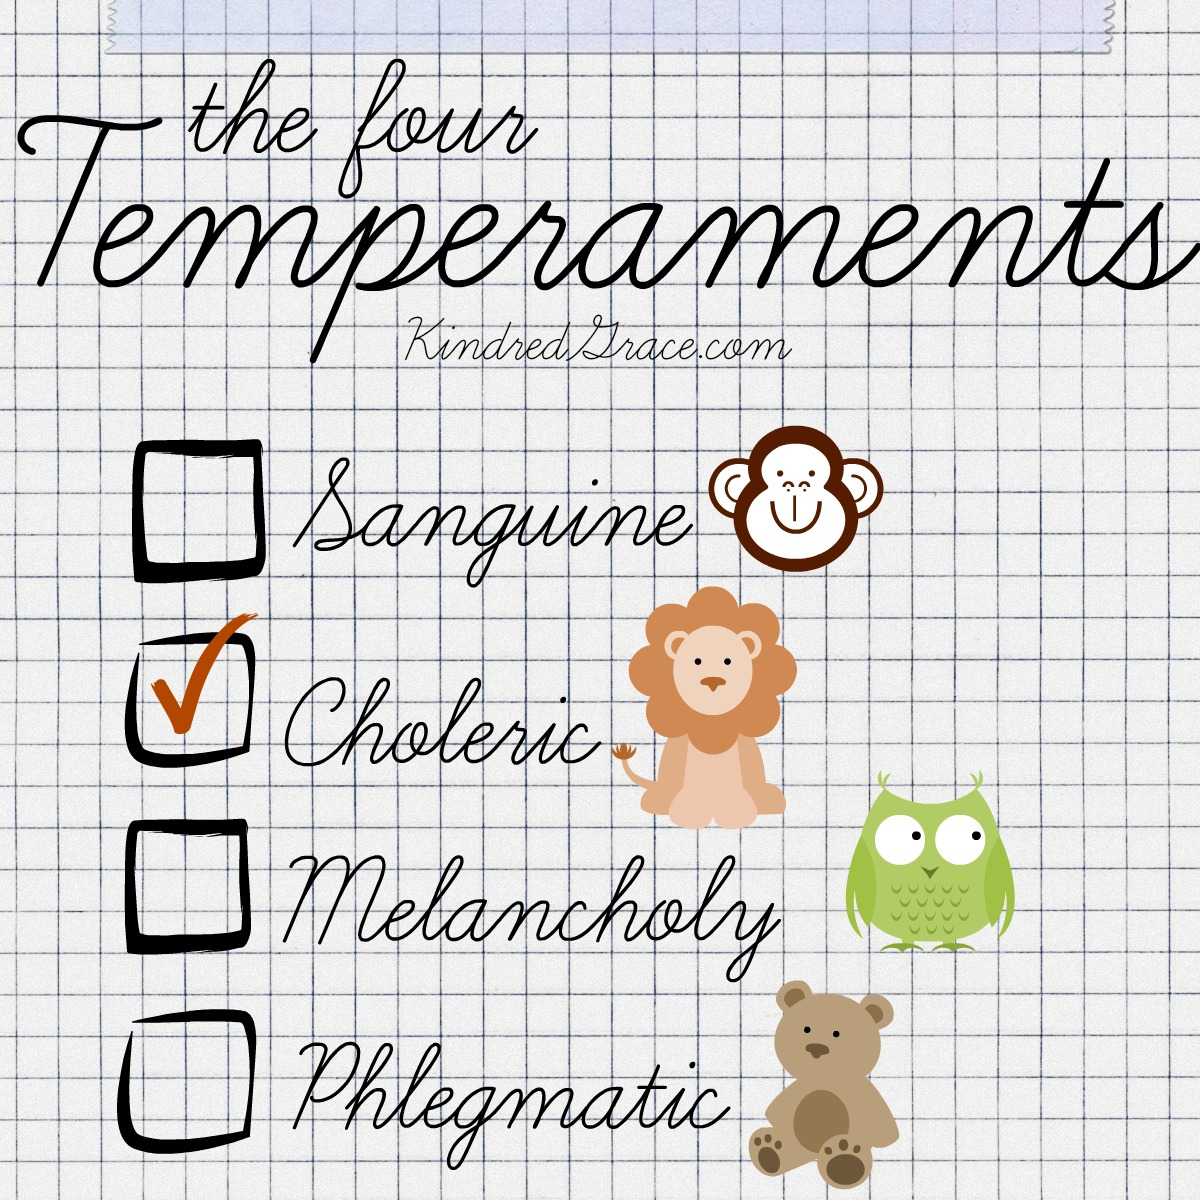 Choleric temperament test